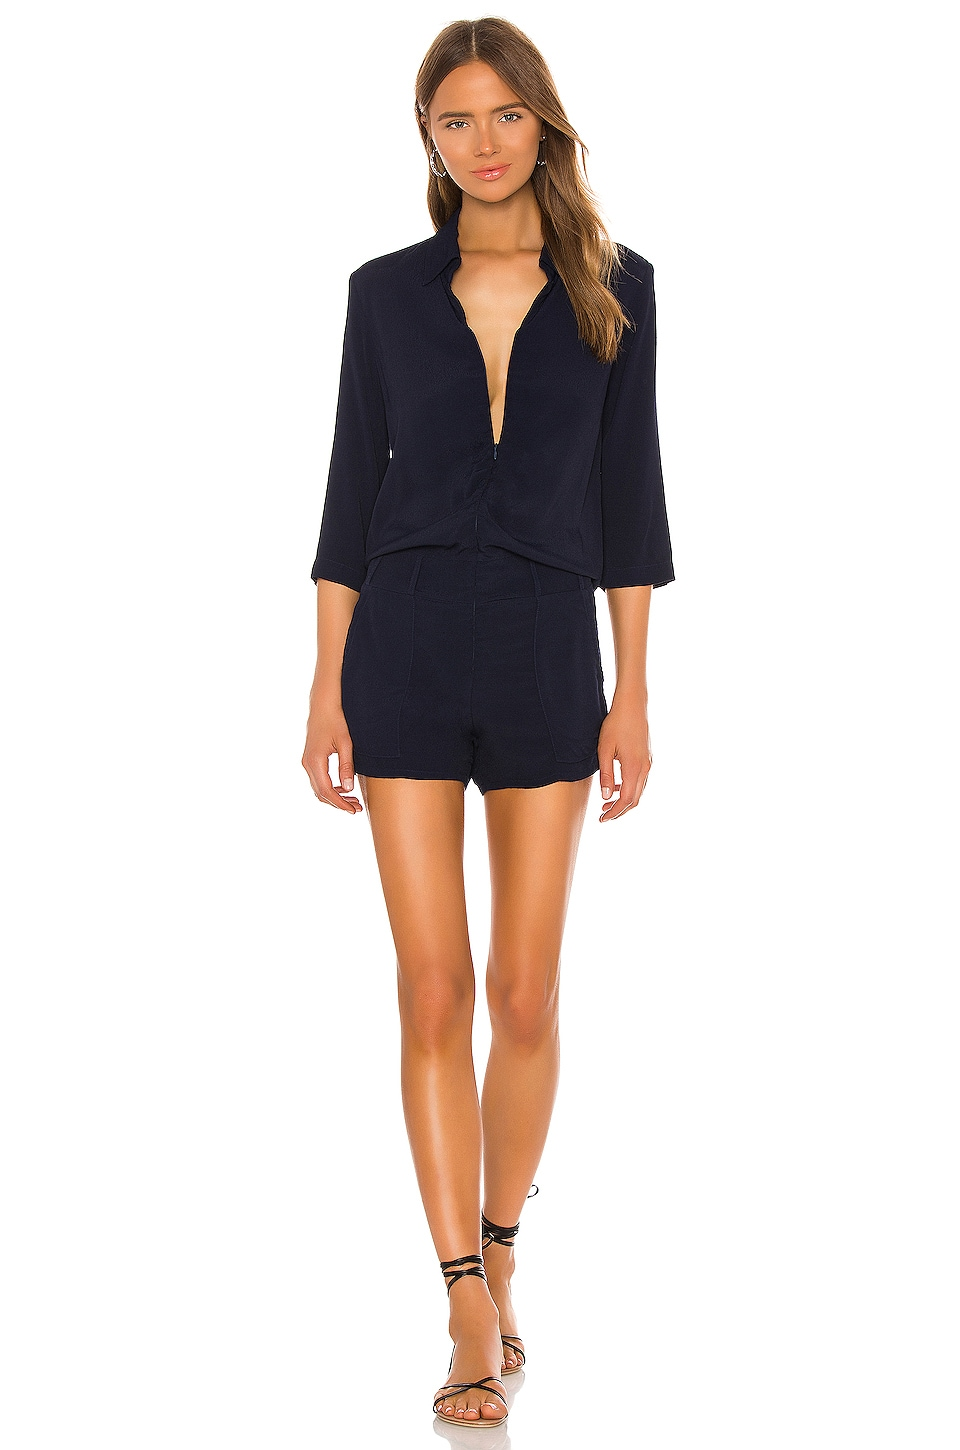 MONROW Zip Up Romper in Navy